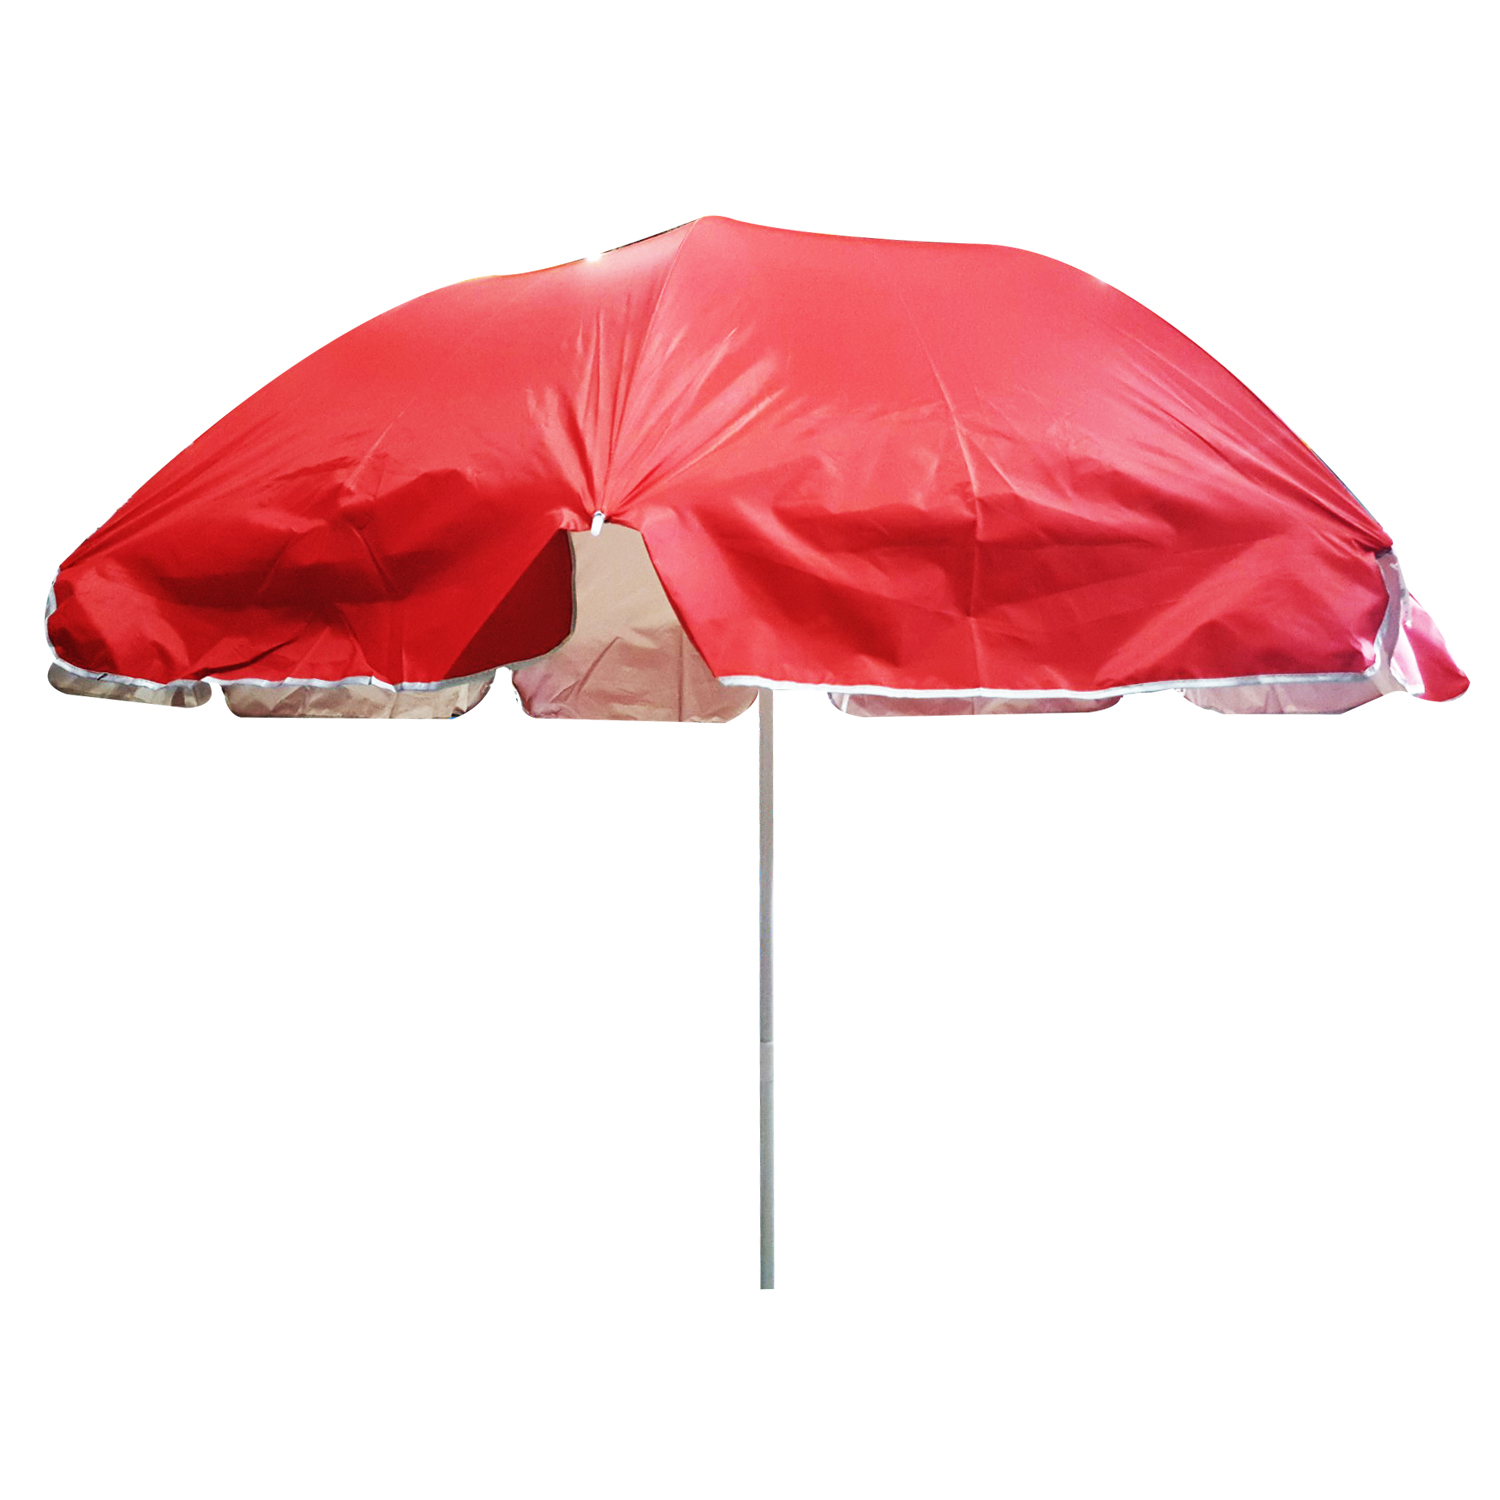 "40"" x 8"" RIBS Beach Umbrella #420.01.0110.83"